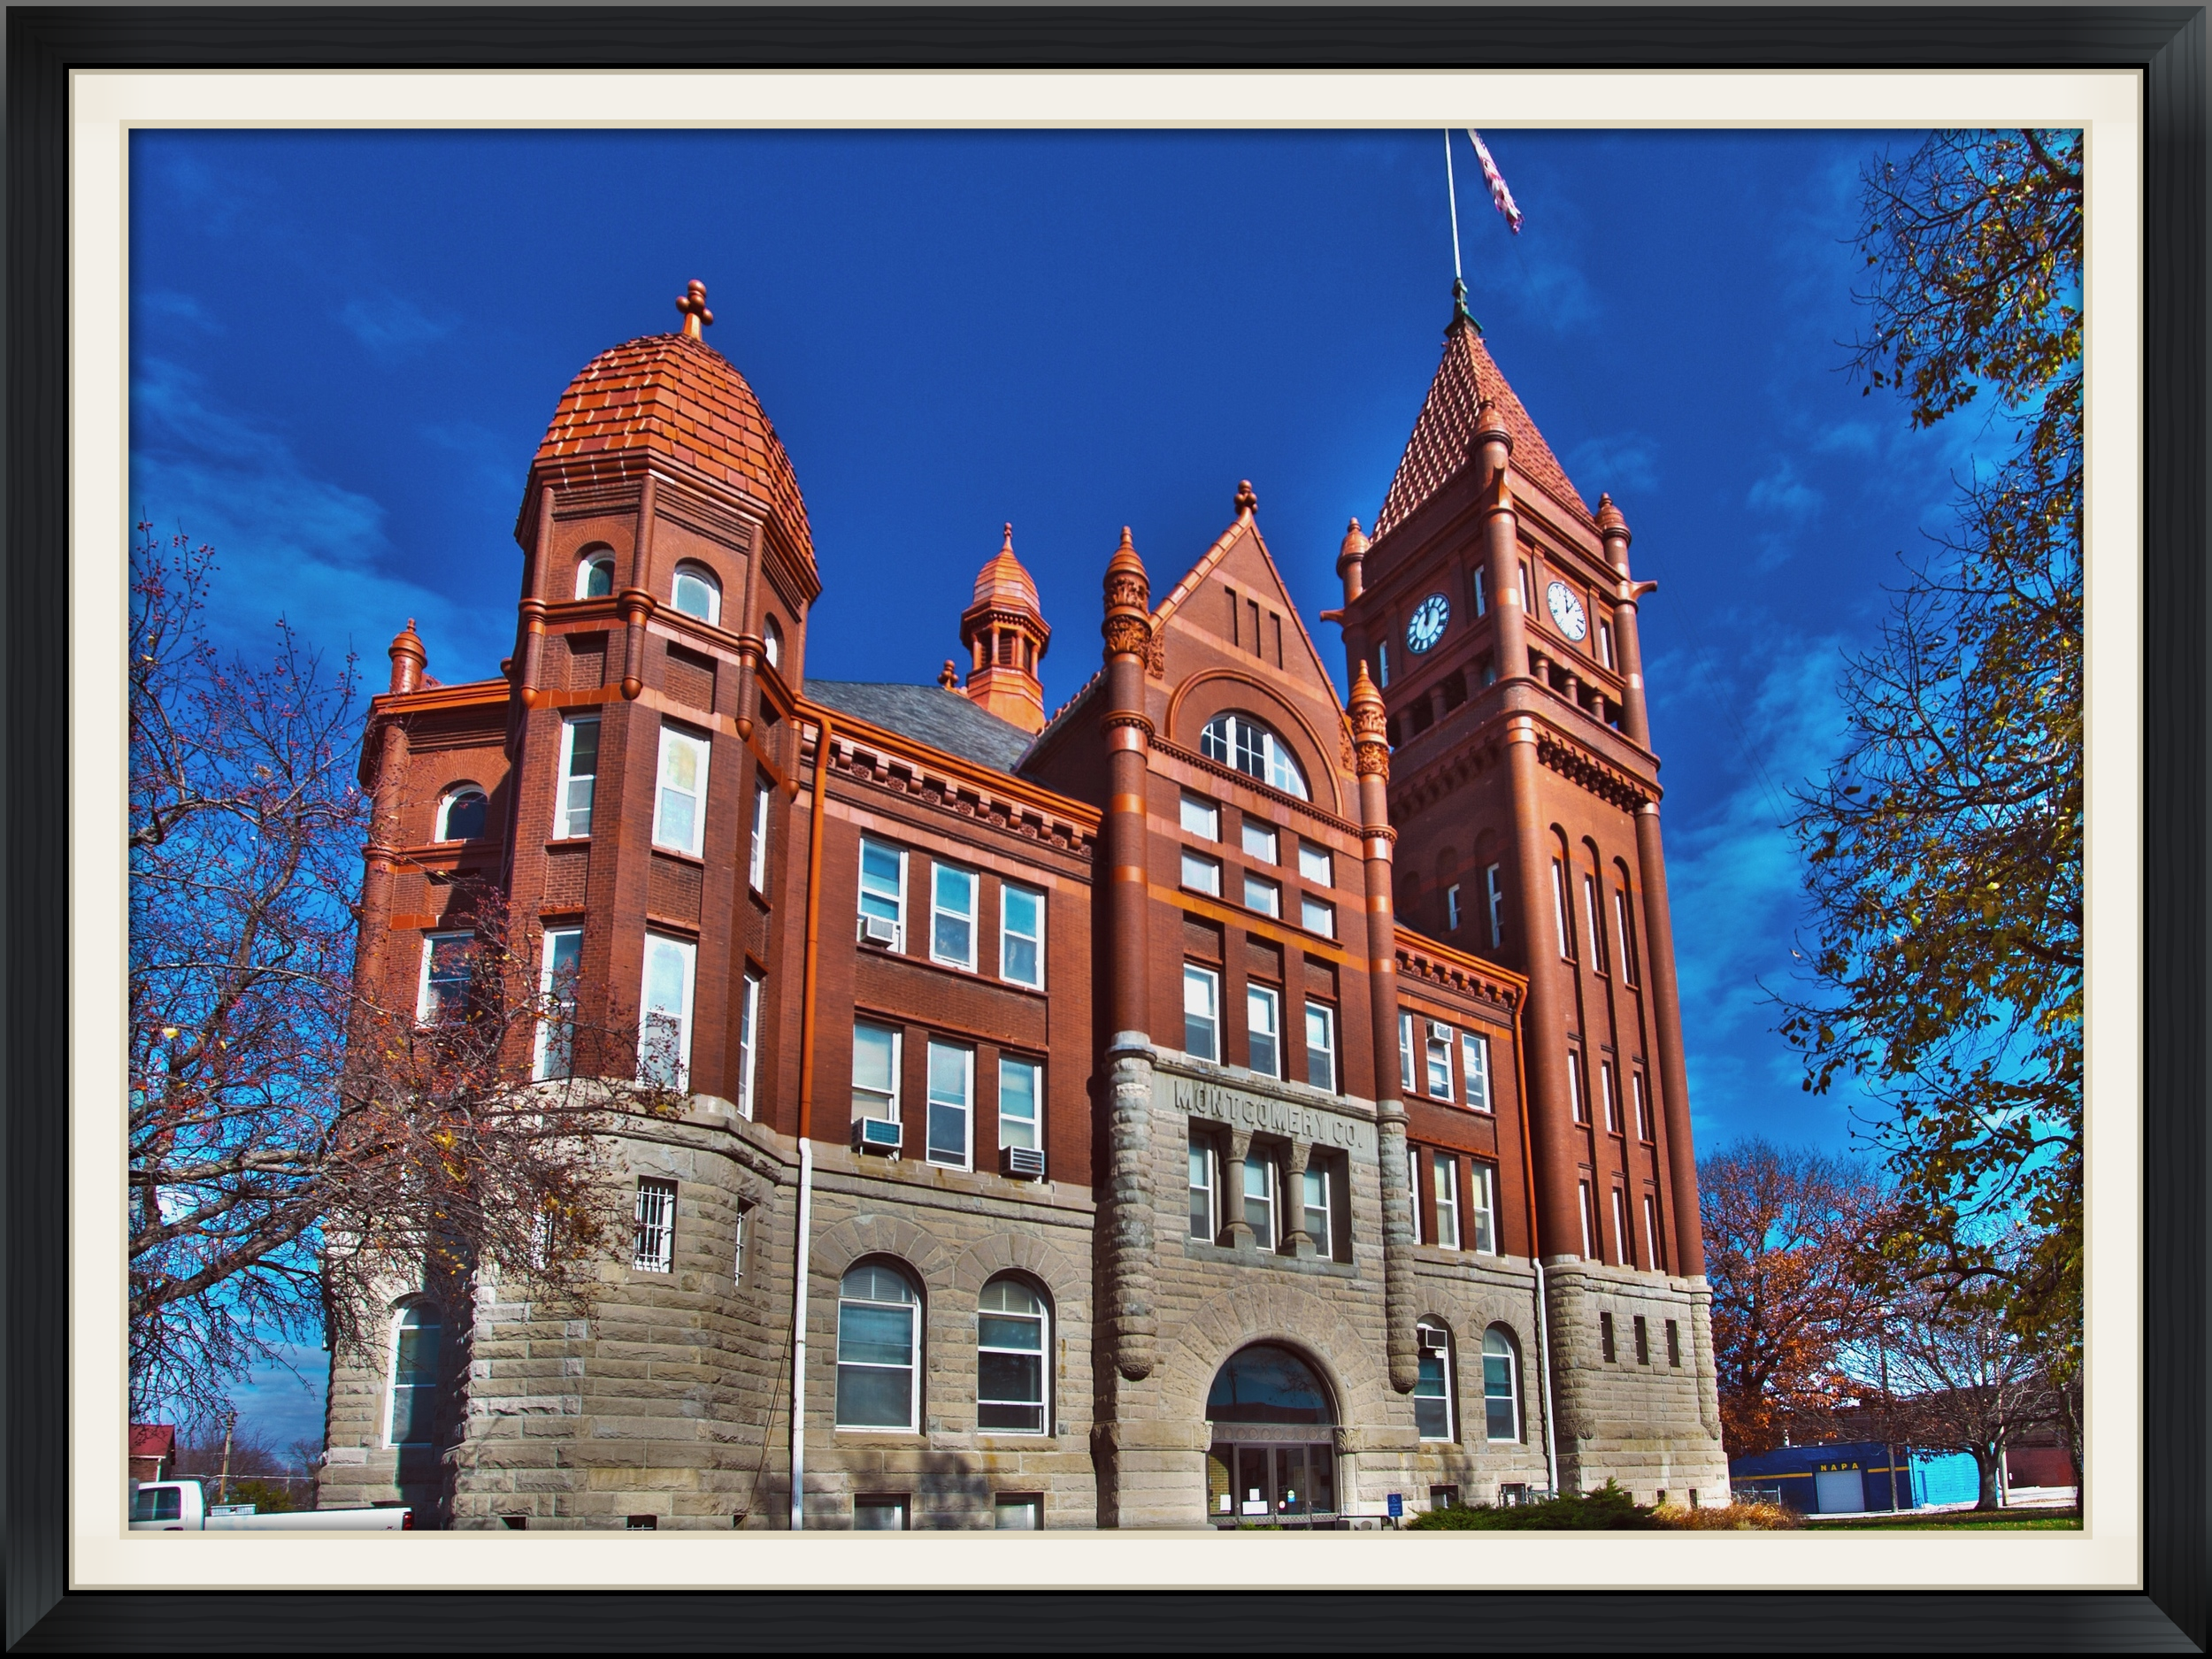 We are located 1/2 block east of the Montgomery County courthouse on Coolbaugh Street in Red Oak, Iowa.